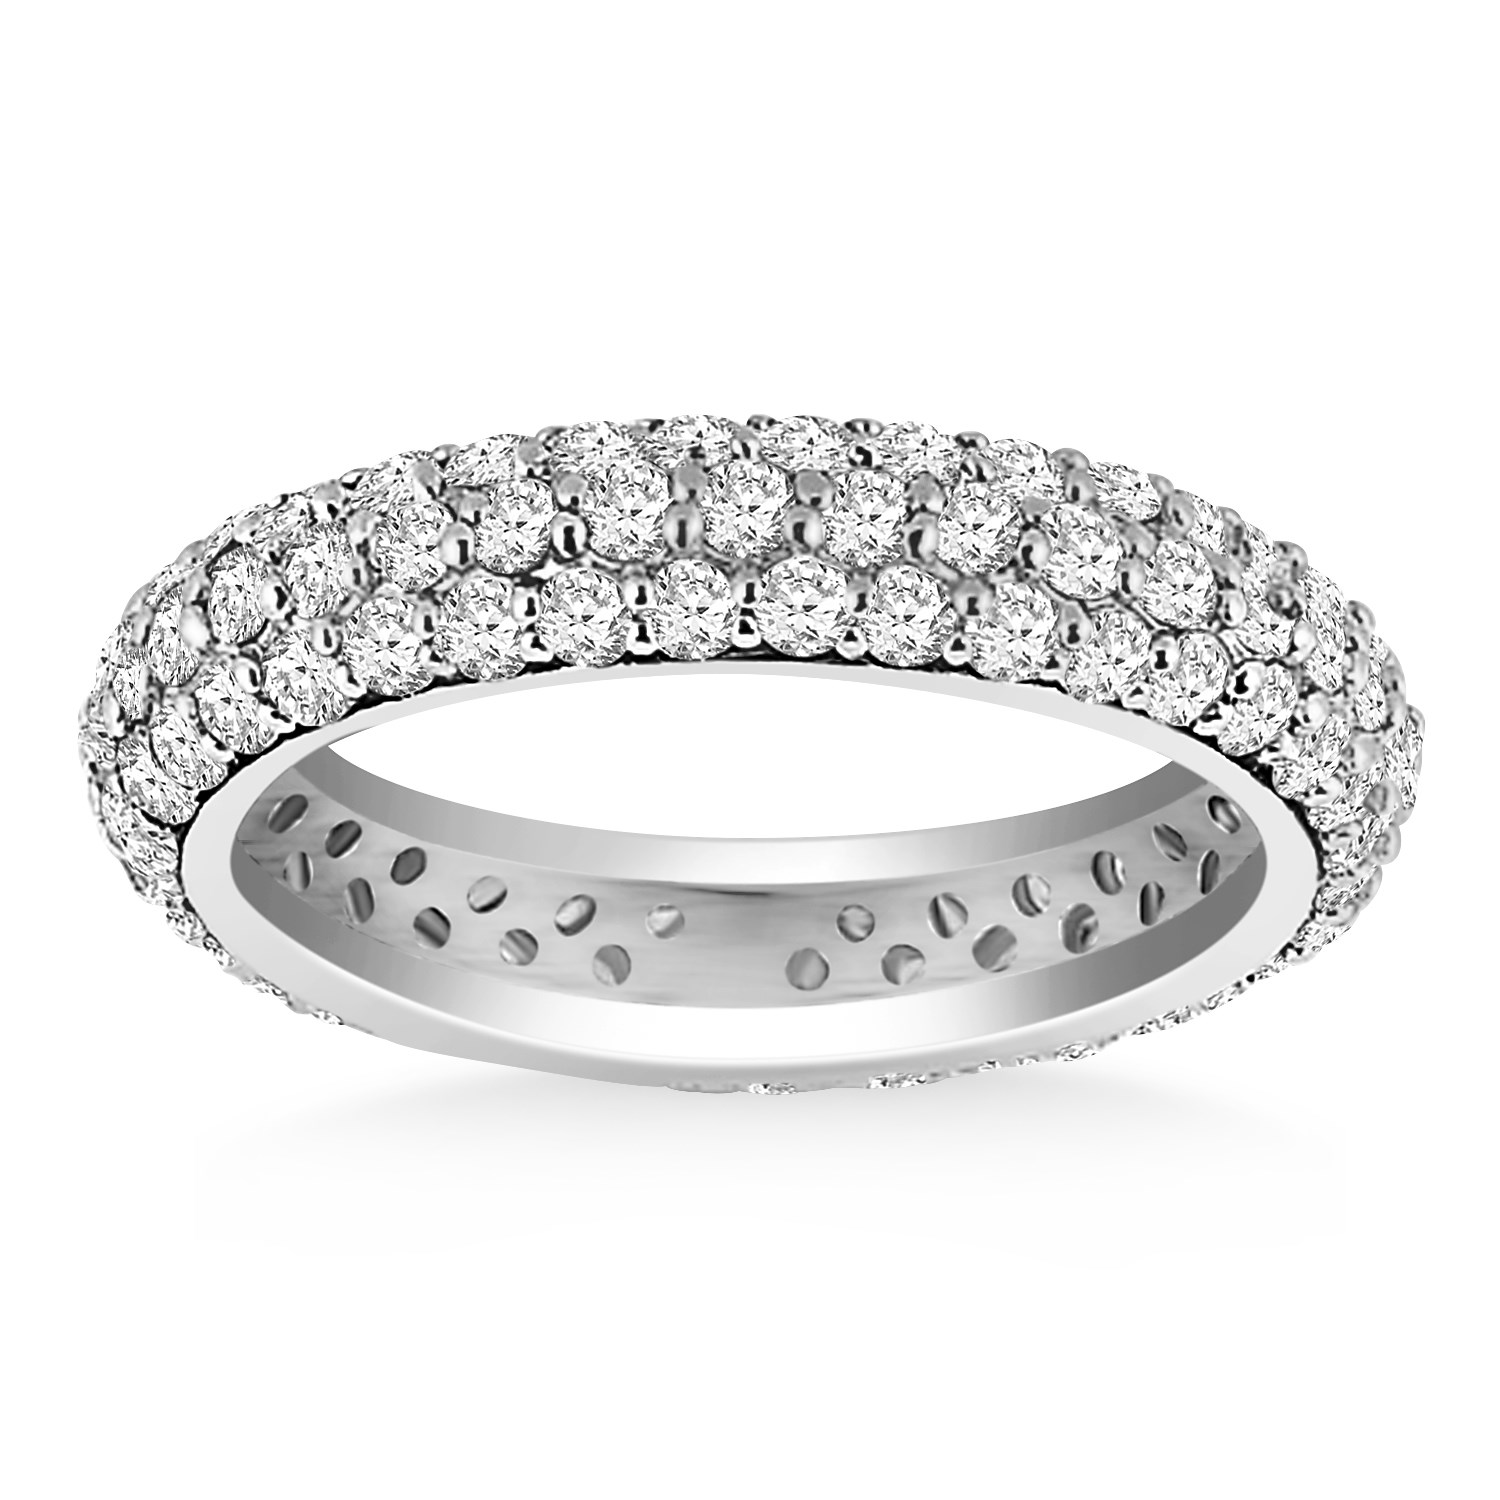 domed pave set round diamond eternity ring in 14k white. Black Bedroom Furniture Sets. Home Design Ideas